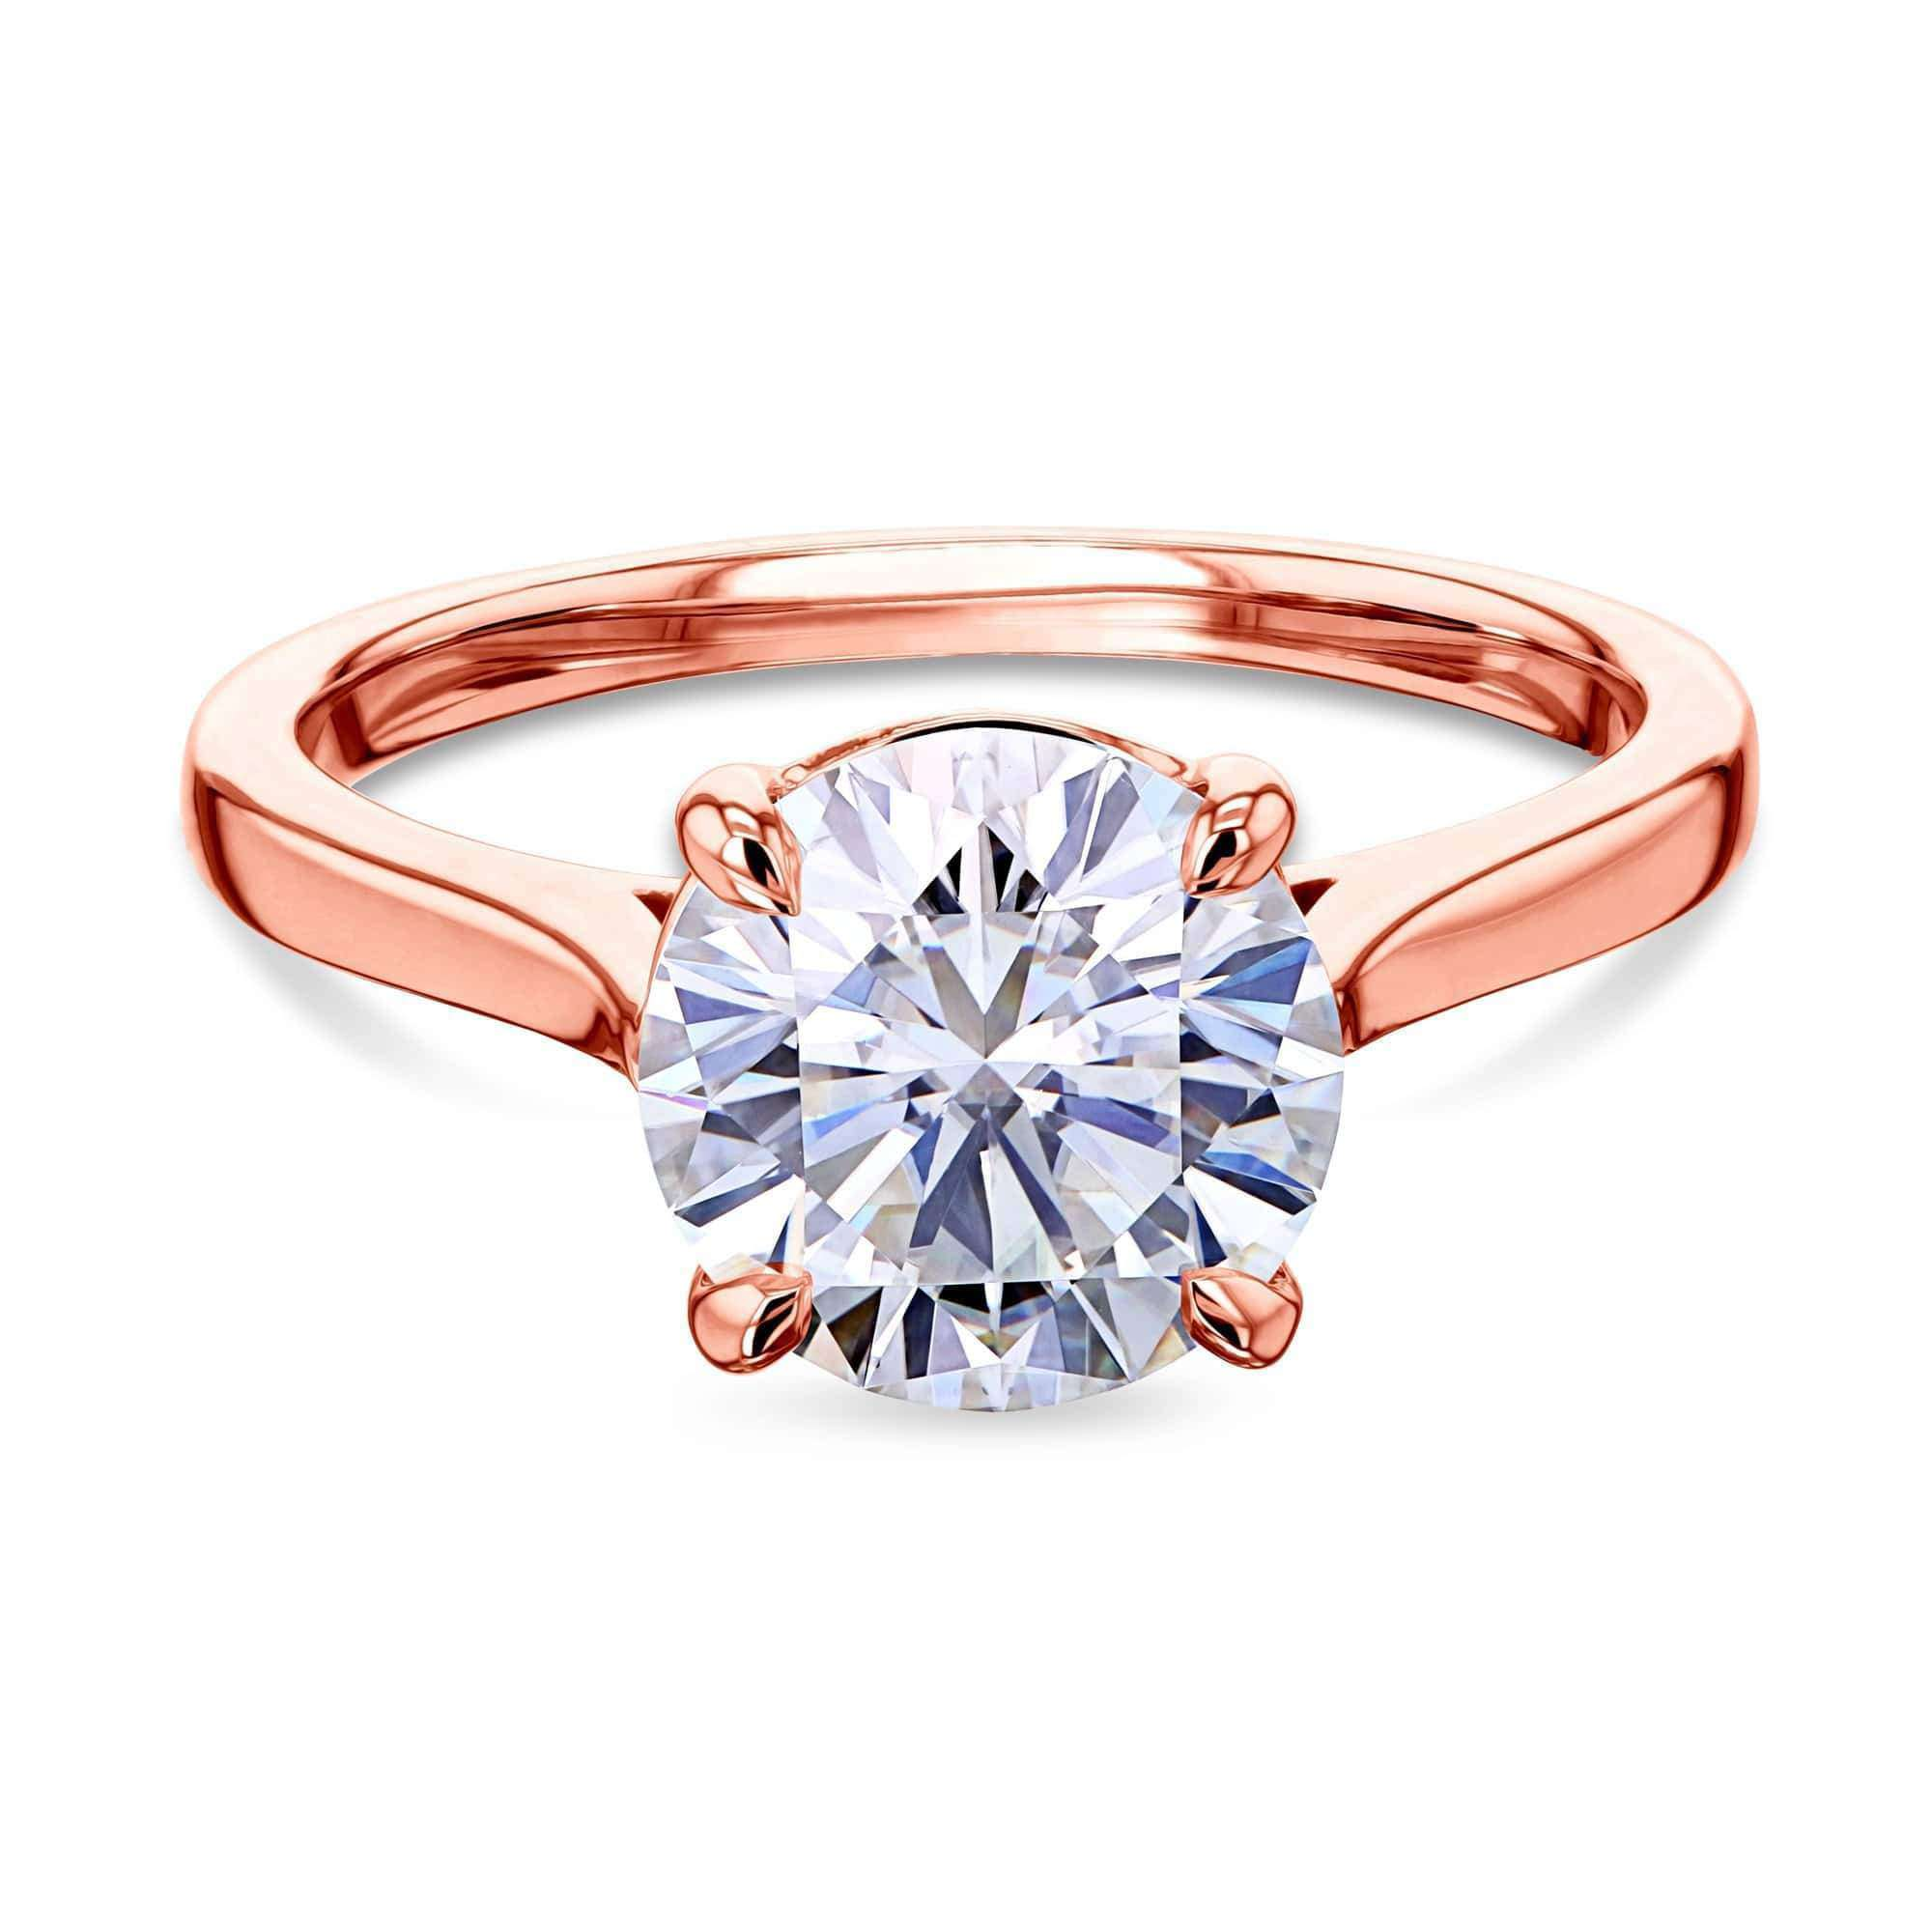 Promos 1.9ct Round Moissanite Solitaire Ring - rose-gold 11.0 Kobelli F-G